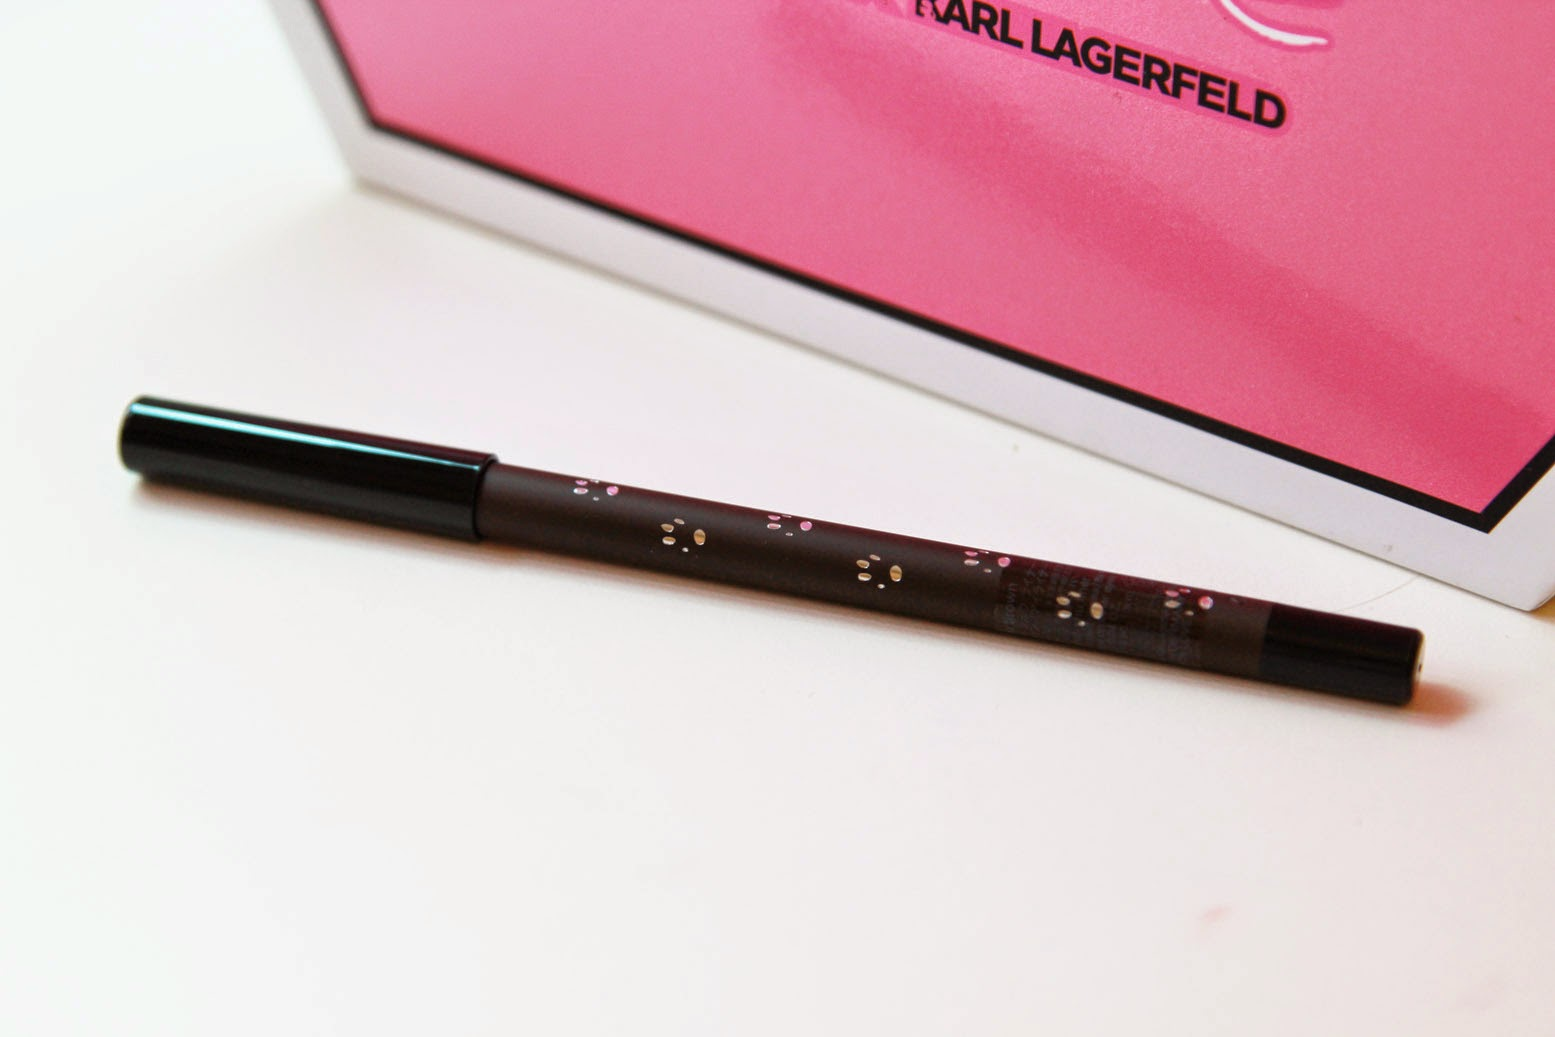 Shu Uemura Shupette Drawing Pencil in Brown